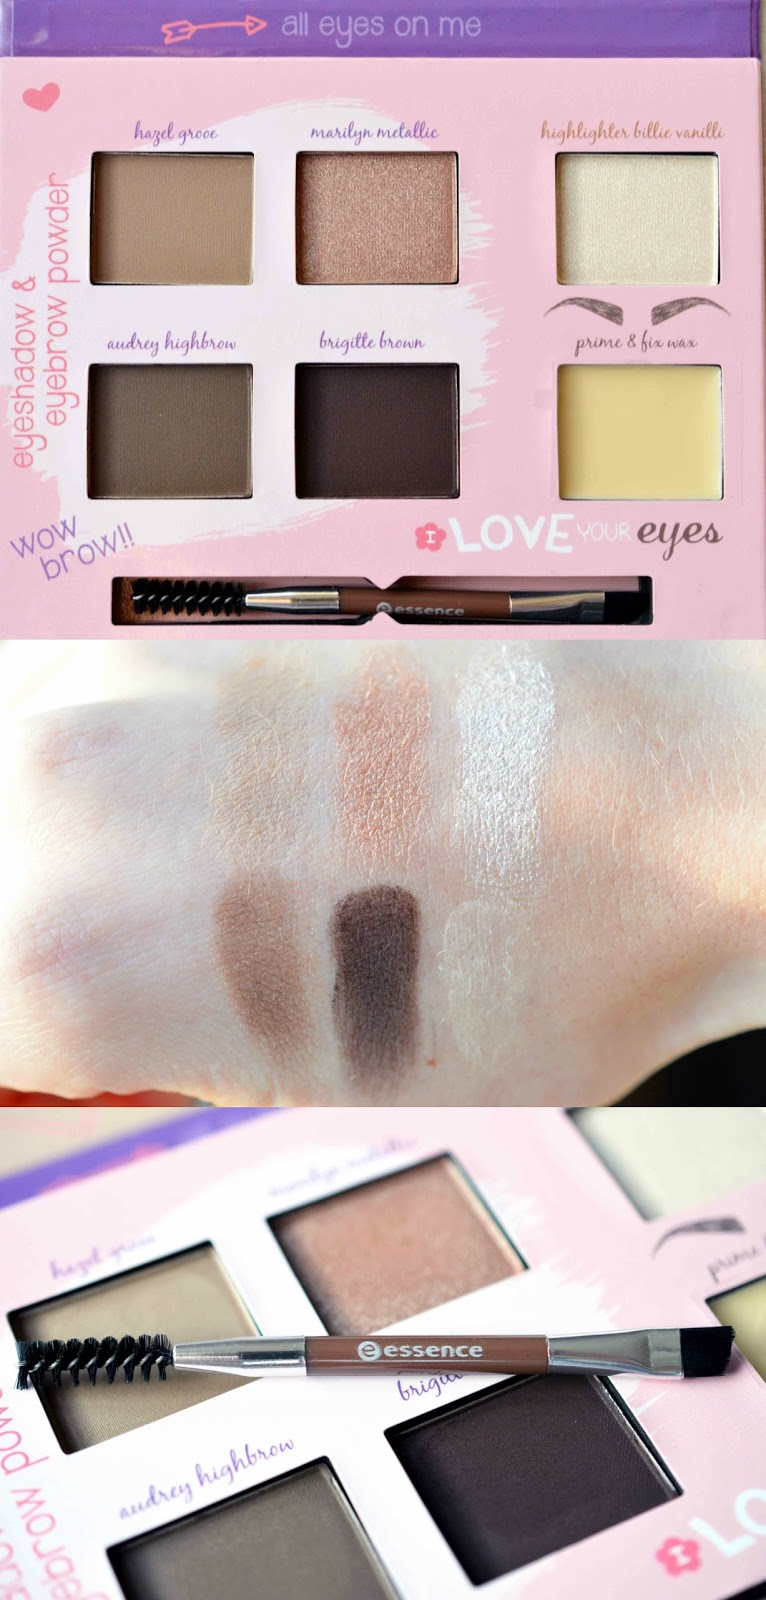 Shape & shadows eye contouring palette